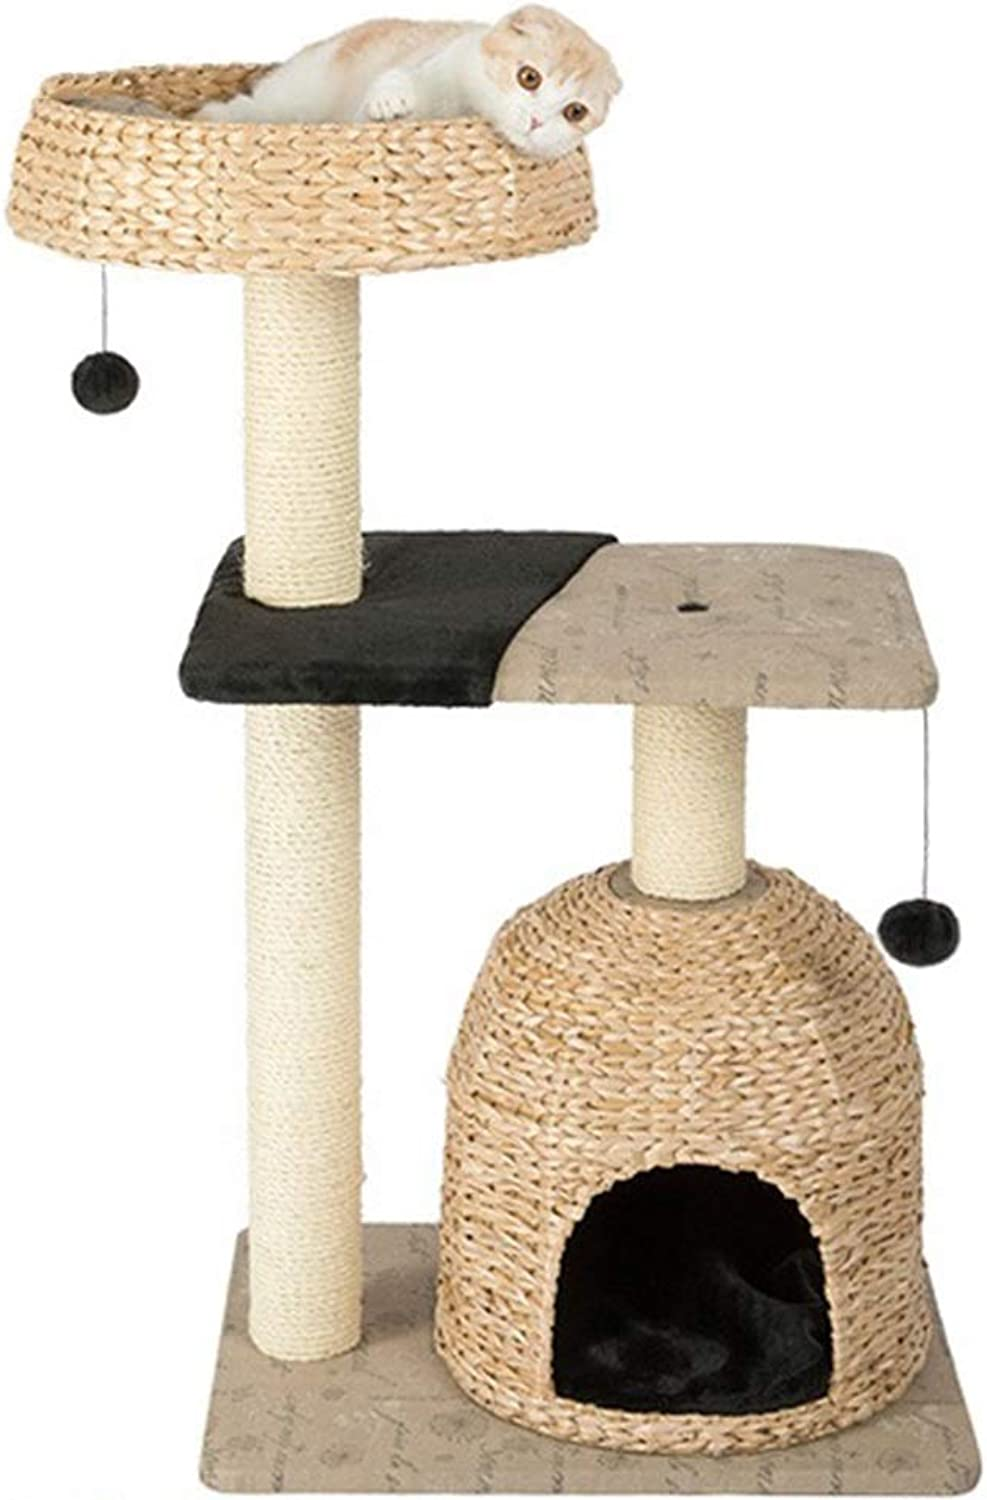 LXHONG Cat Climbing Frame Cat Furniture Pet Supplies Handmade Breathable Rest Apartment Spacious Easy To Install (color   A, Size   60X45X105CM)